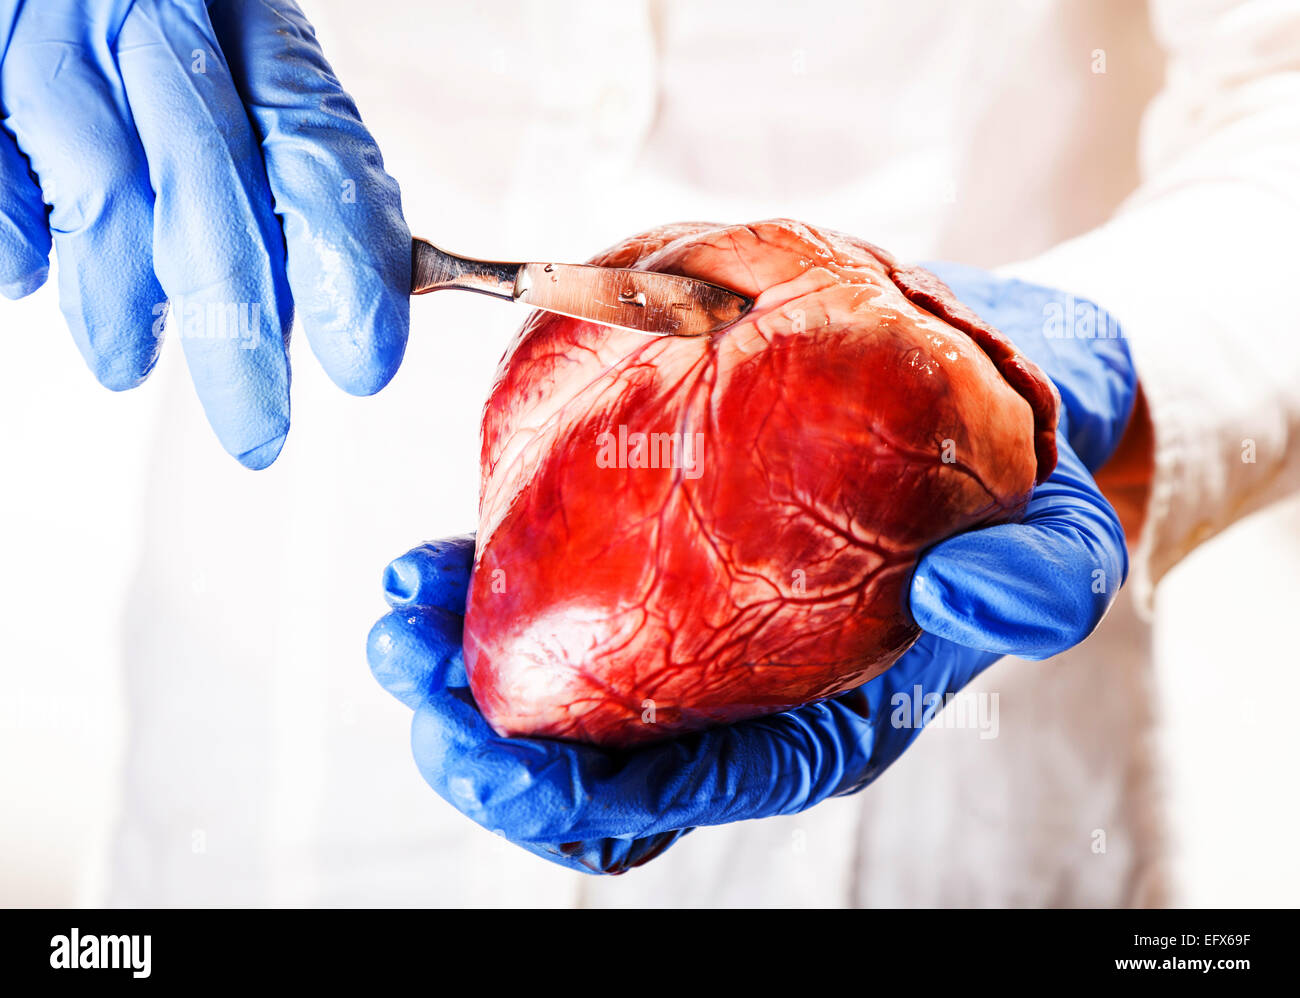 Cardiac Surgeon Abstract Medical Background Stock Photo Alamy